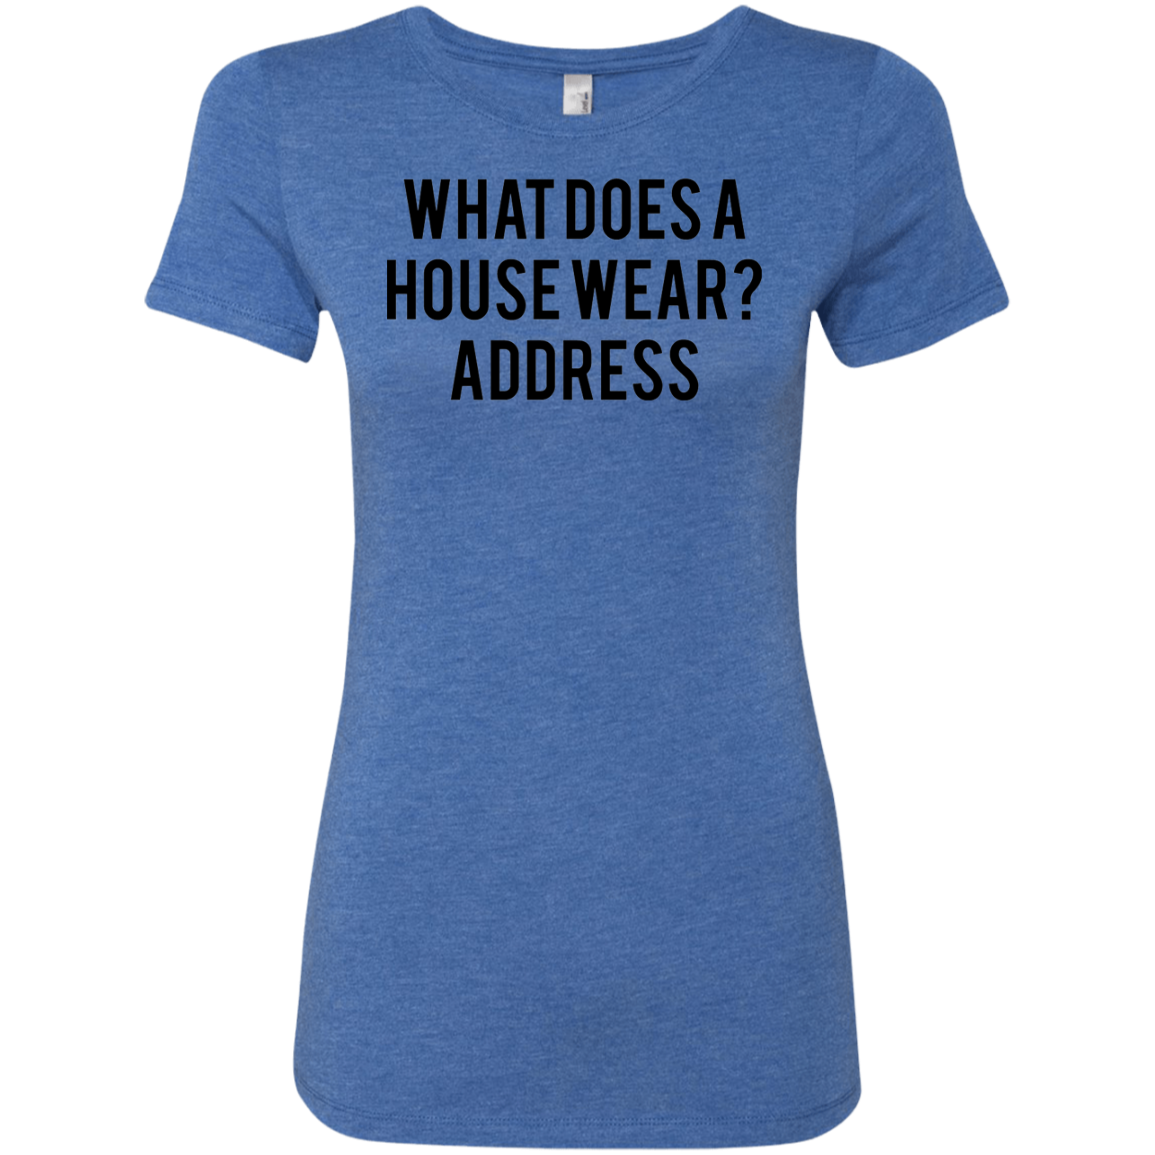 What Does a House Wear Joke Women's Classic Tee